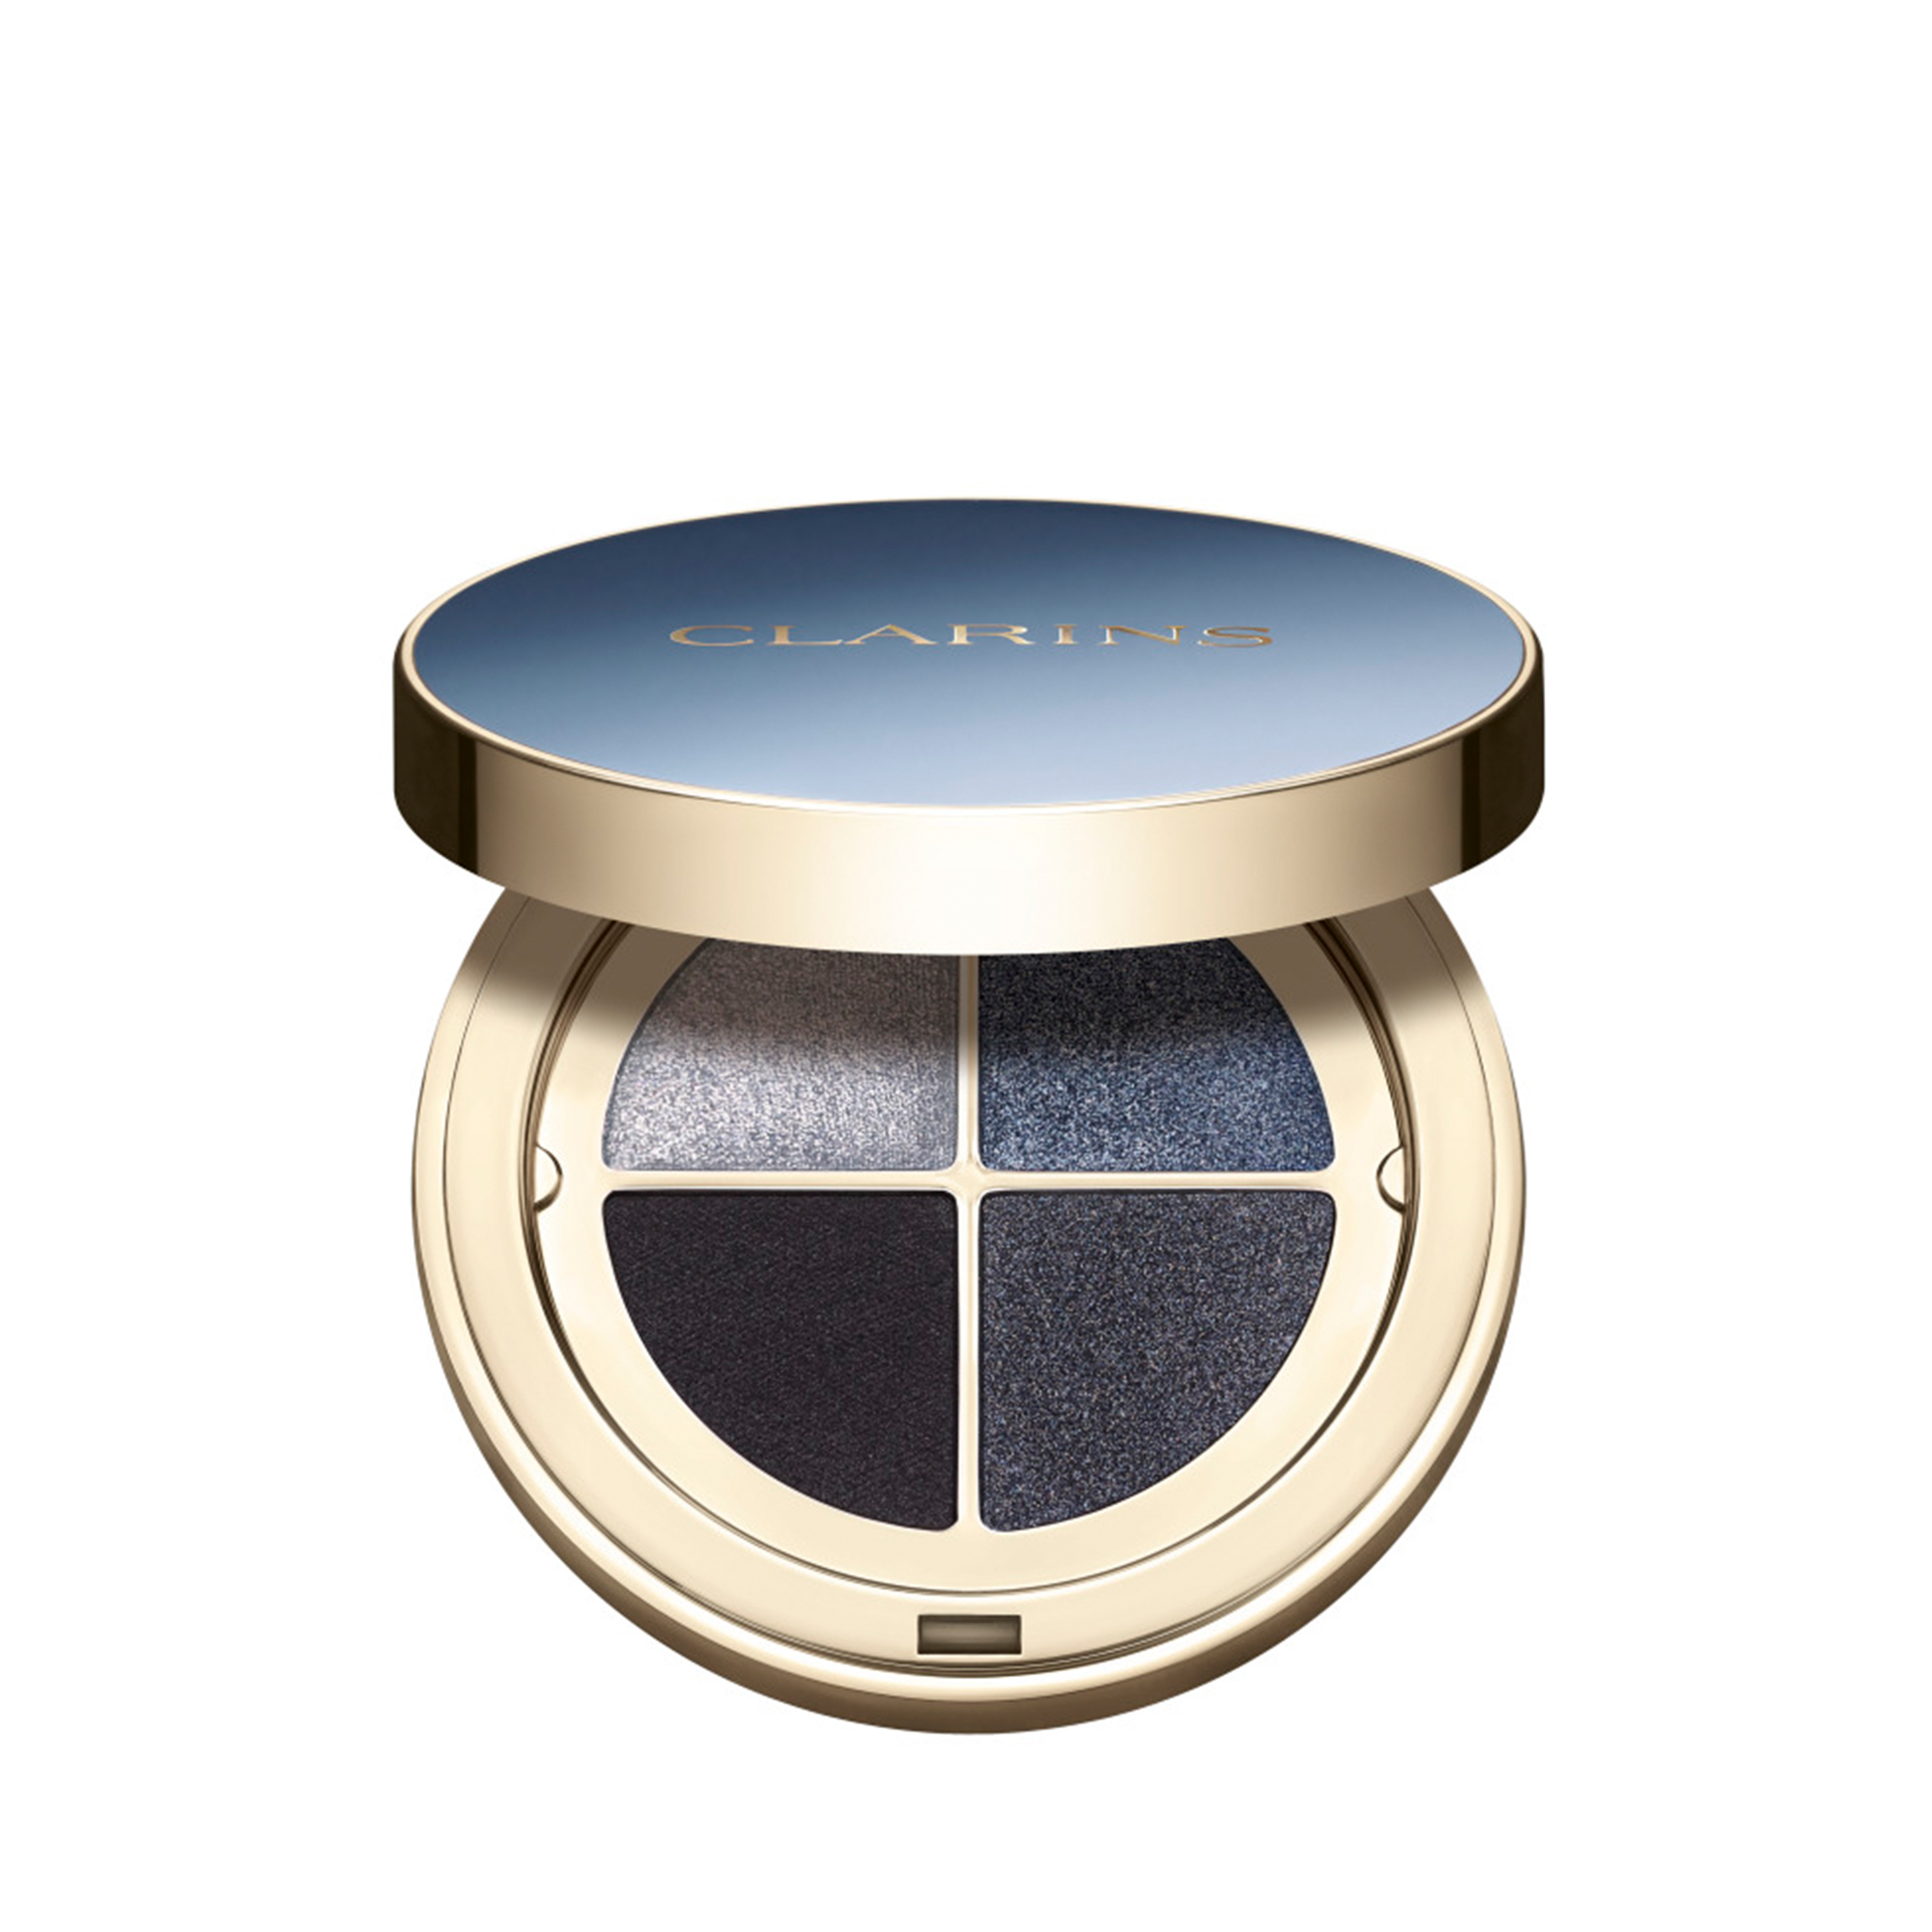 Clarins Ombre 4 Colour Eyeshadow Palette at John Lewis